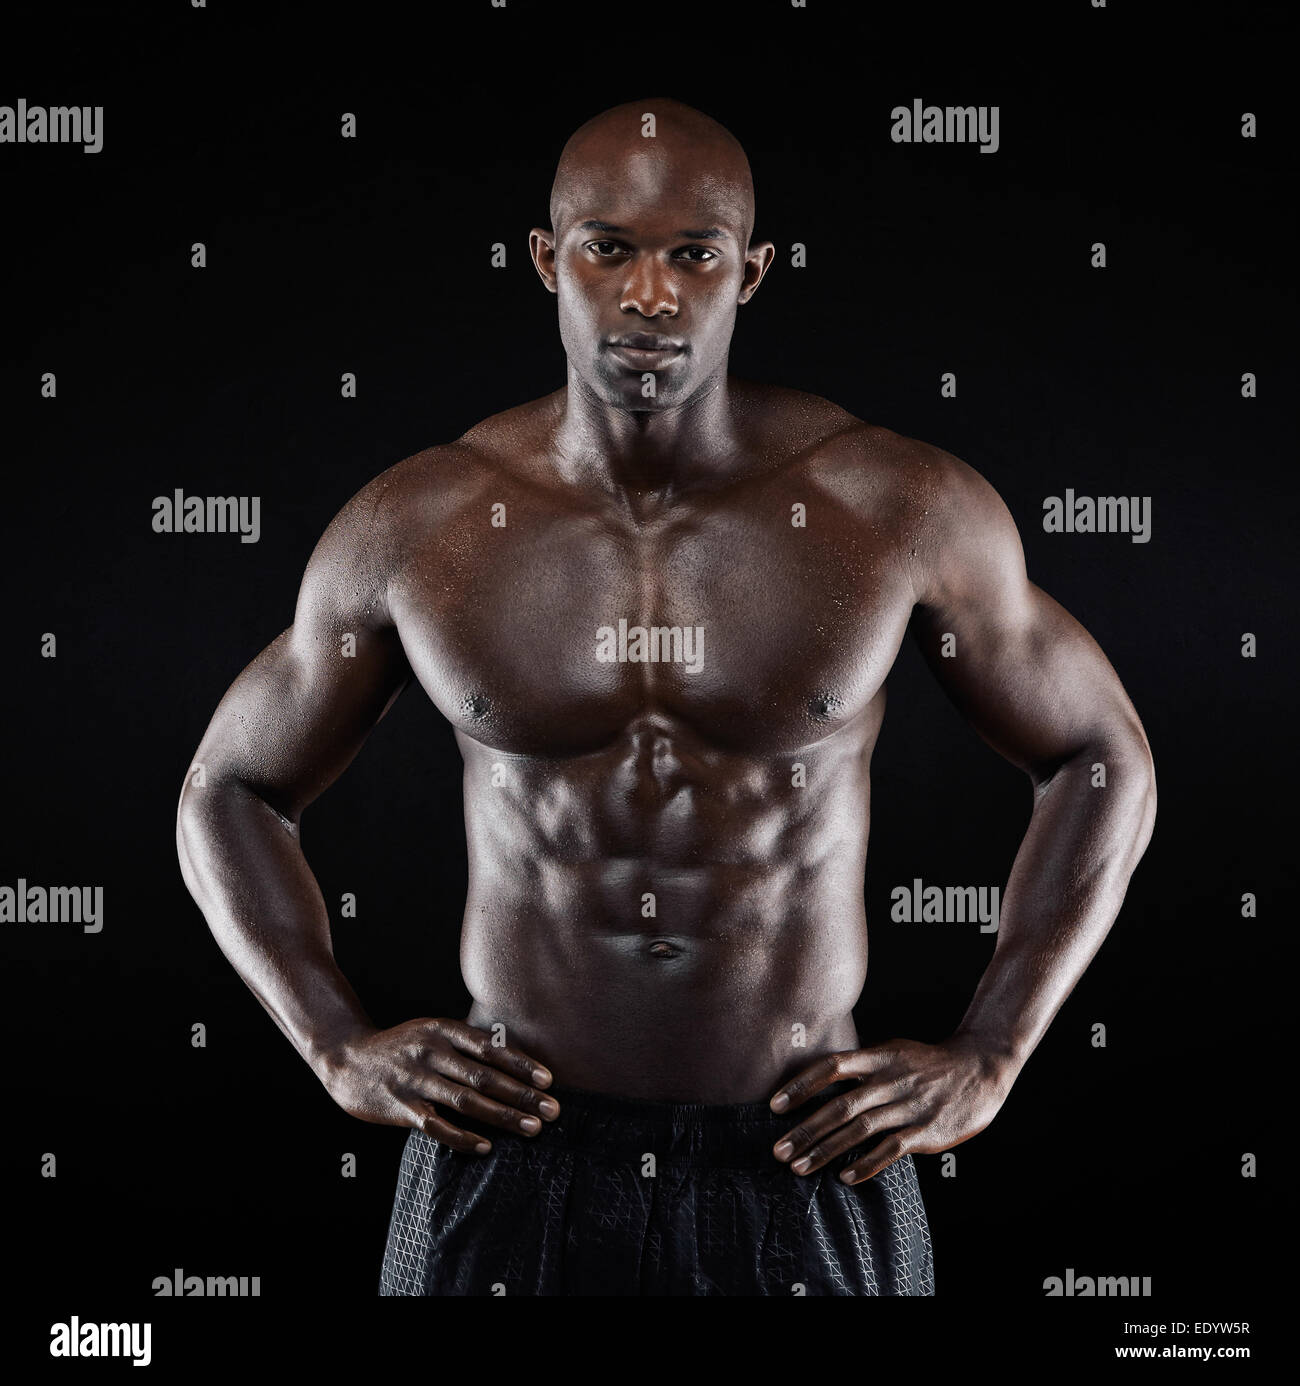 Portrait of a strong afro-american man showing off his physique against black background. Shirtless male model posing. - Stock Image